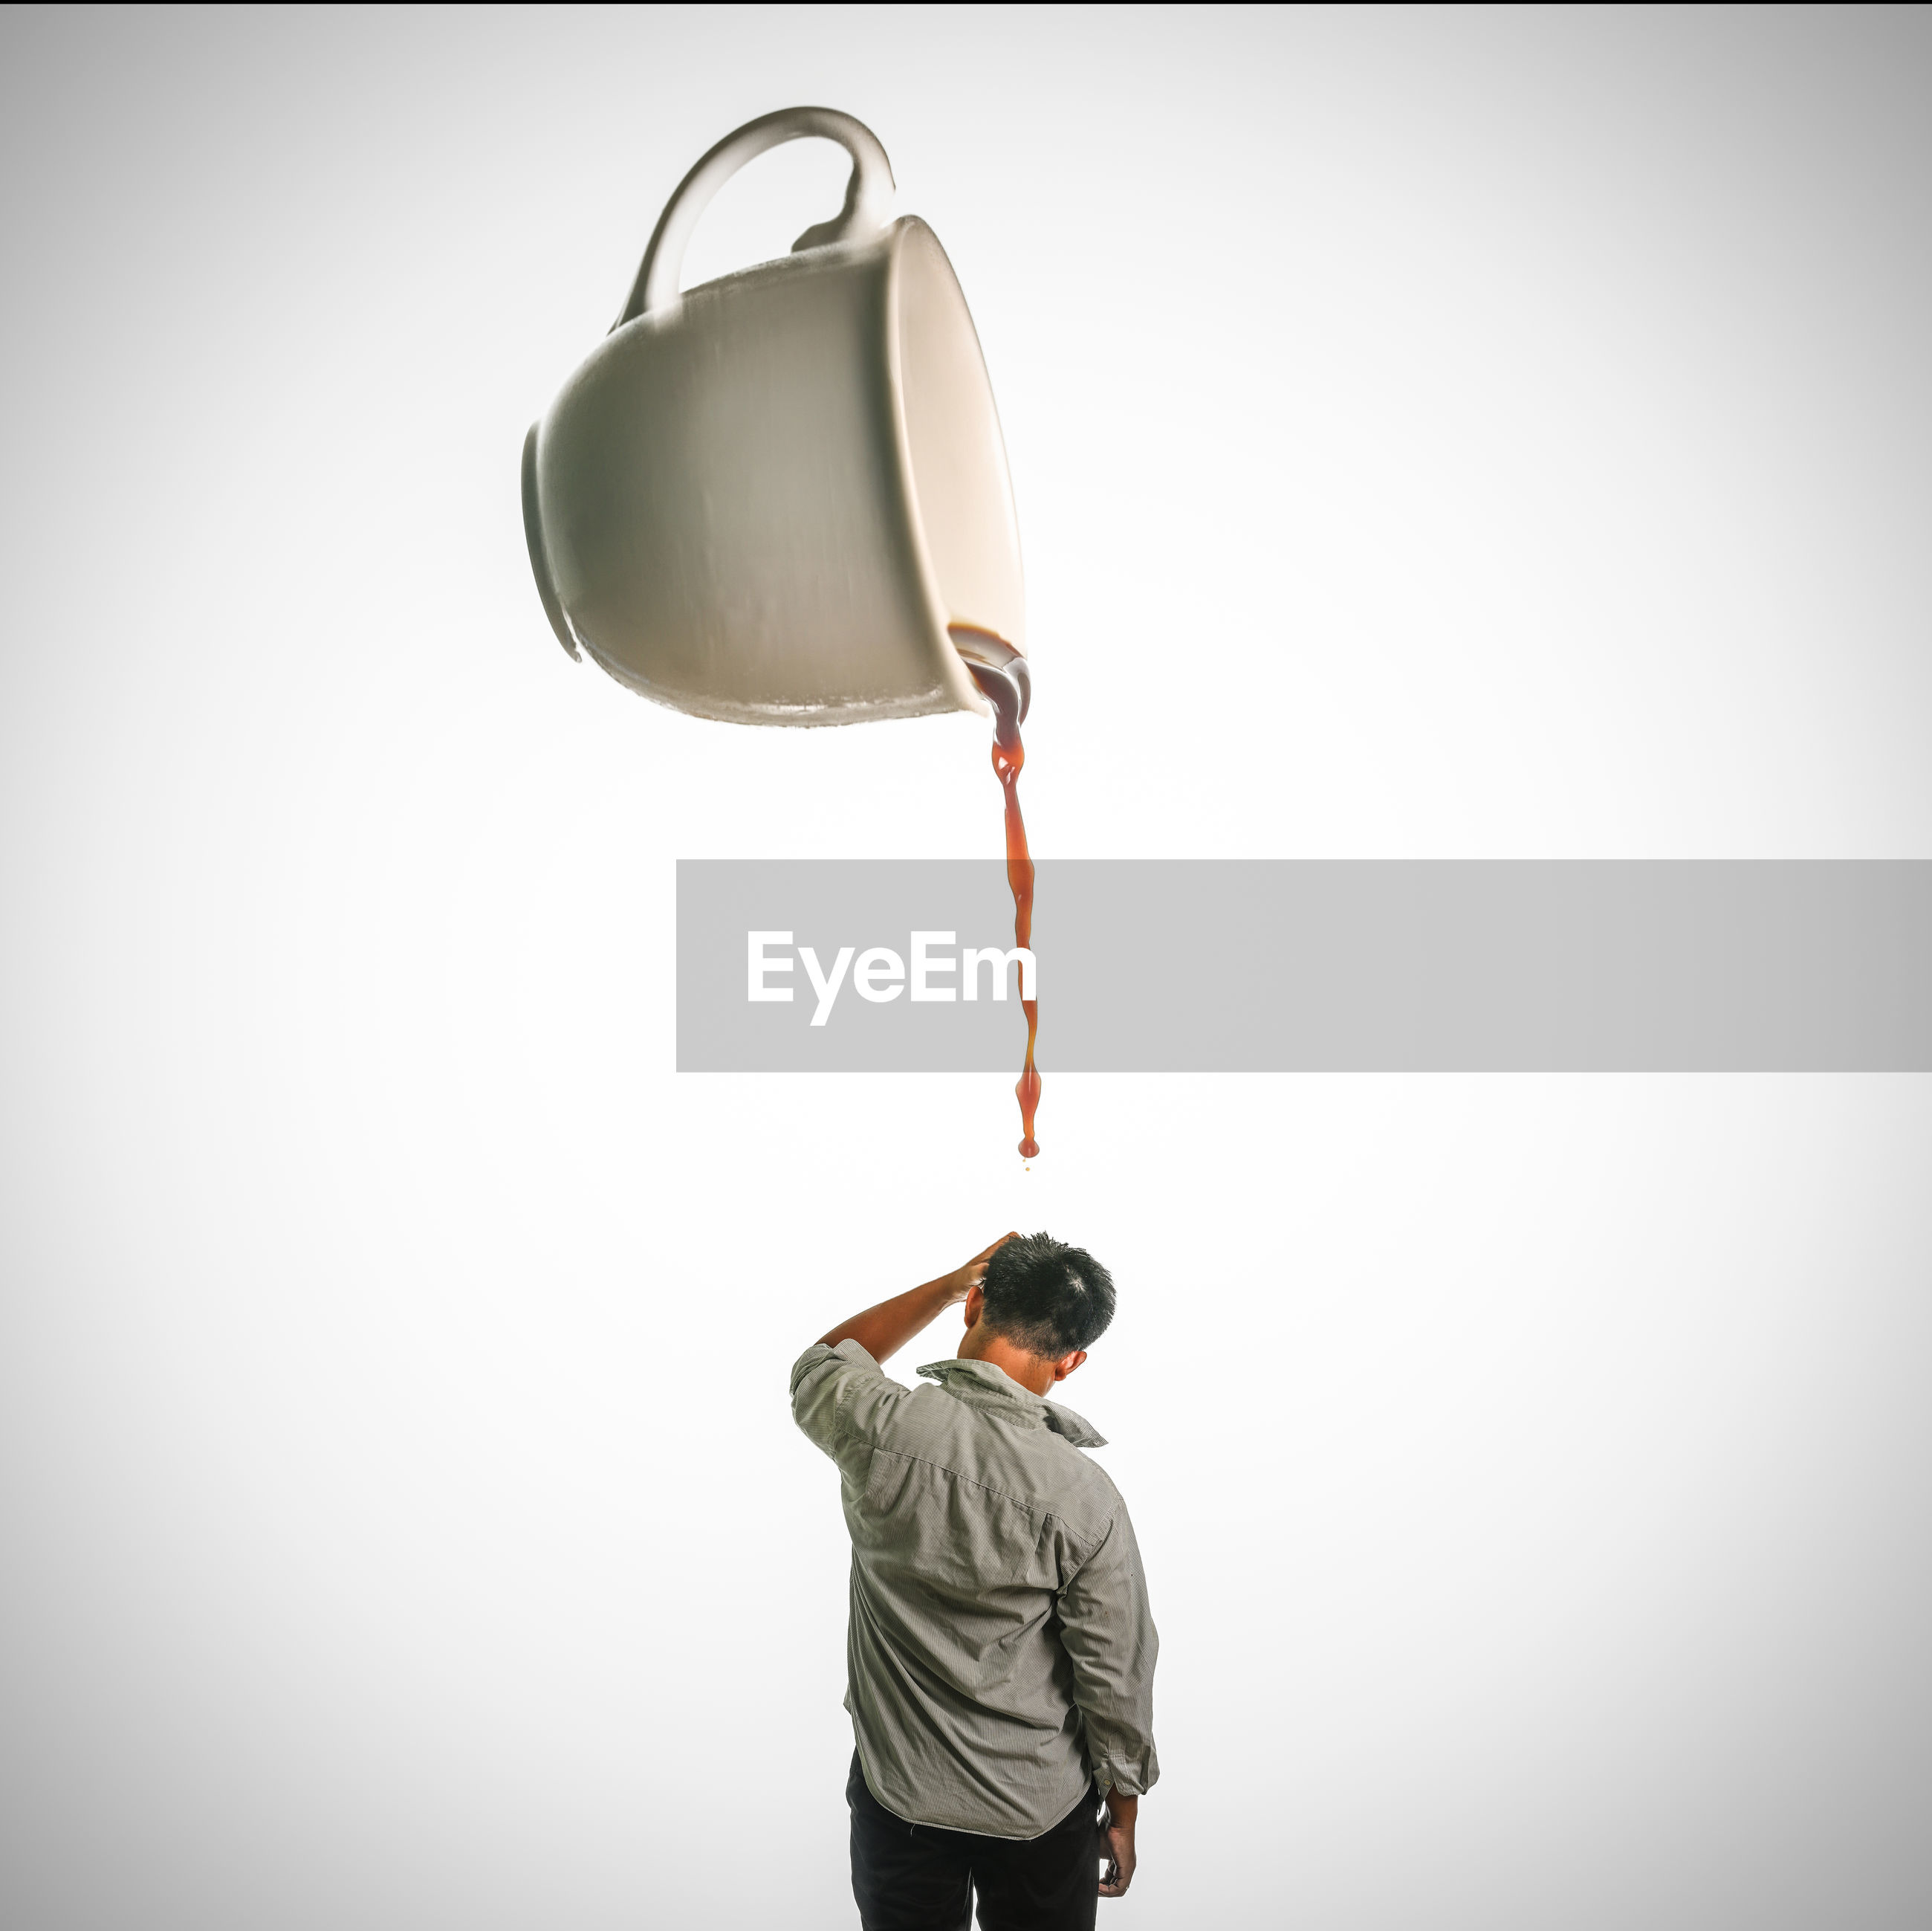 Optical illusion of cup pouring tea on man standing against white background